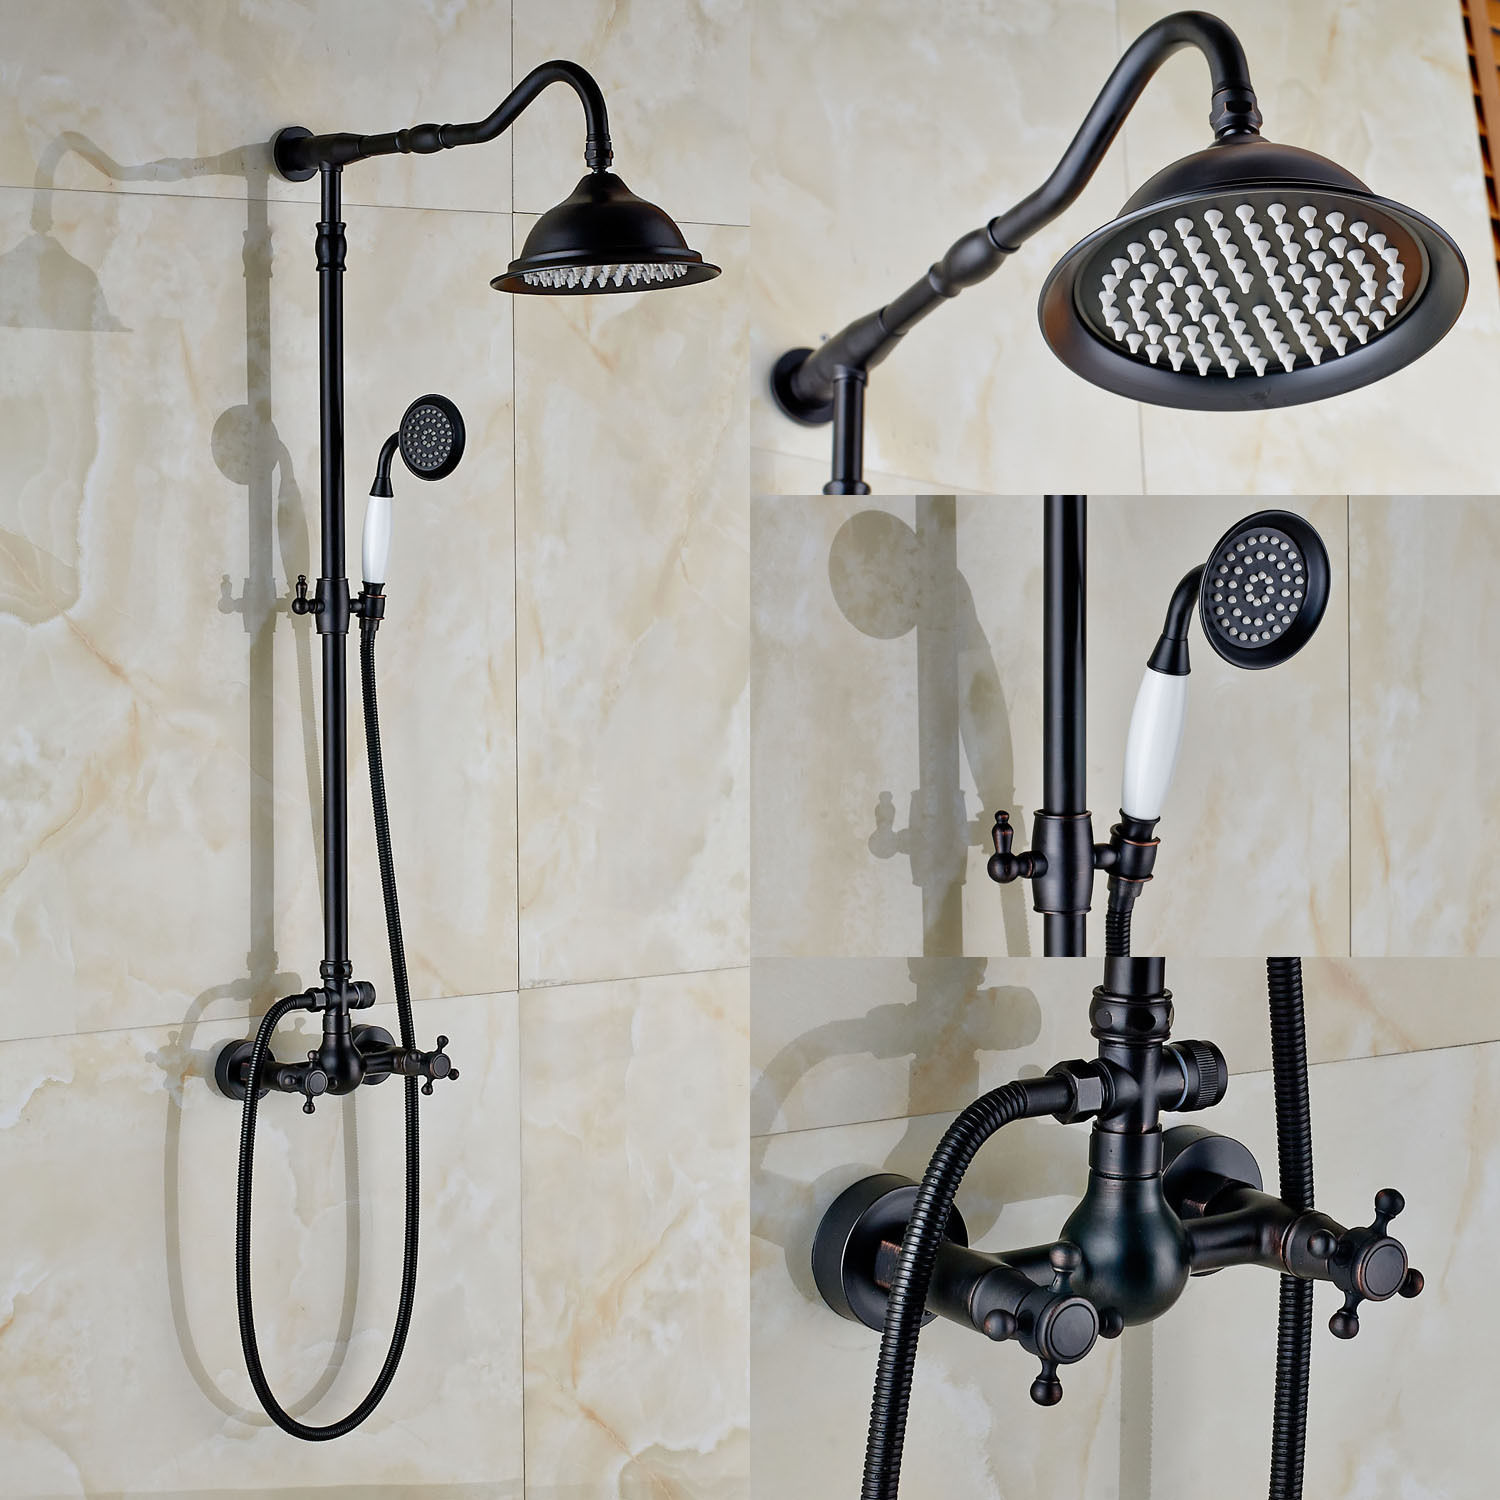 Oil Rubbed Bronze Bath Rain Shower Faucet Set Tub Mixer Tap With Hand Sprayer